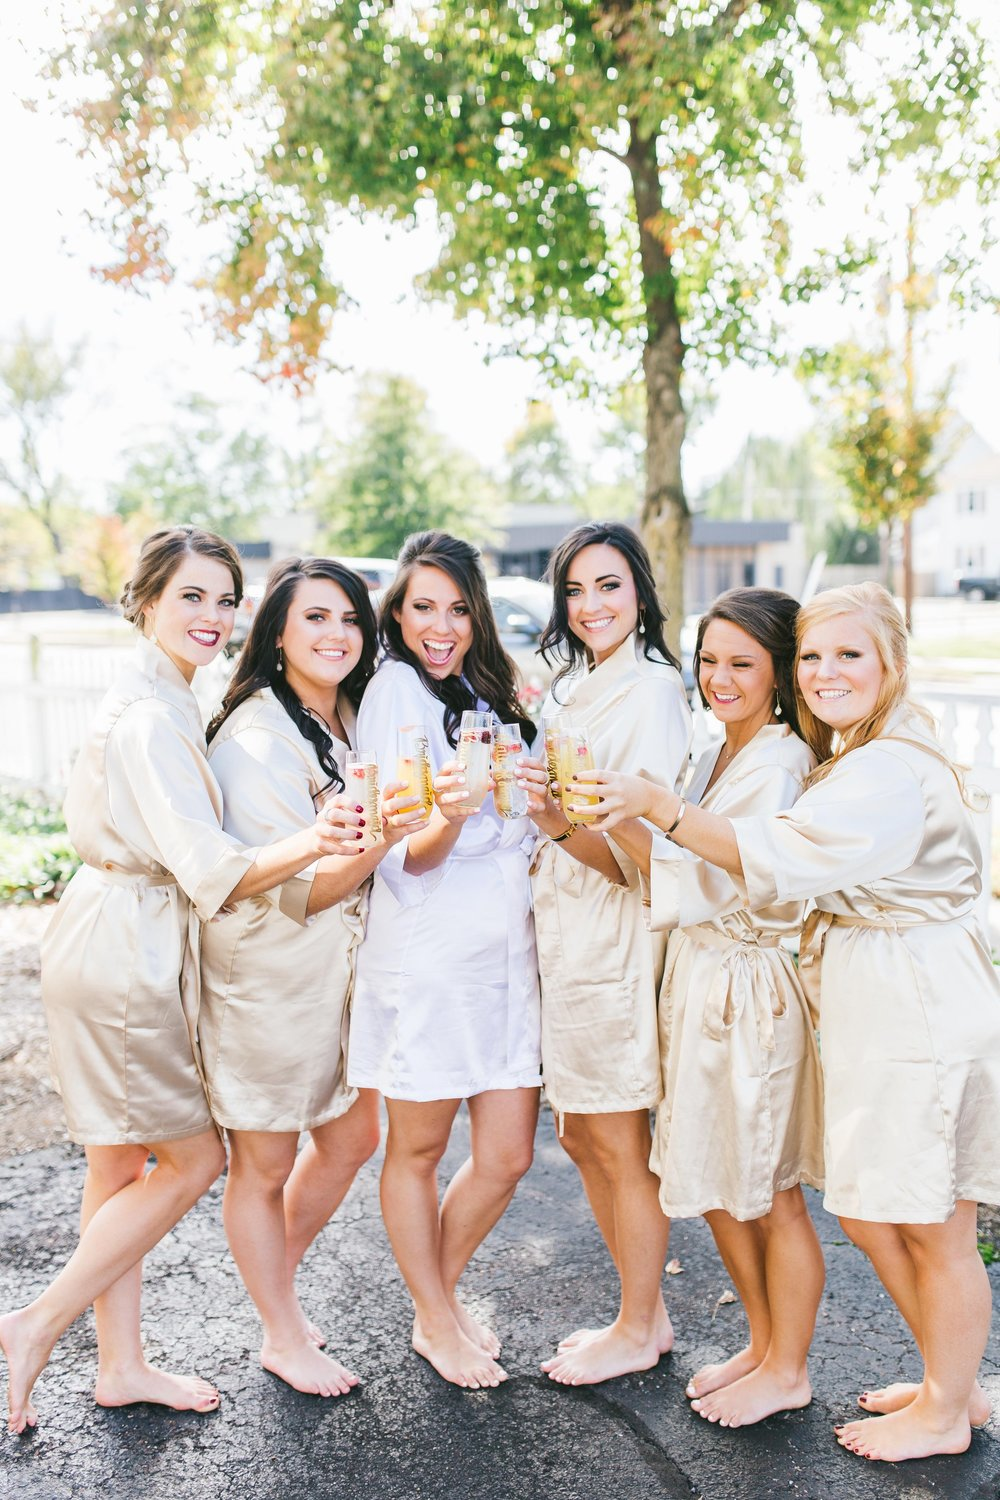 Katlyn Brad Wedding-Bridal Party-0002 copy.jpg